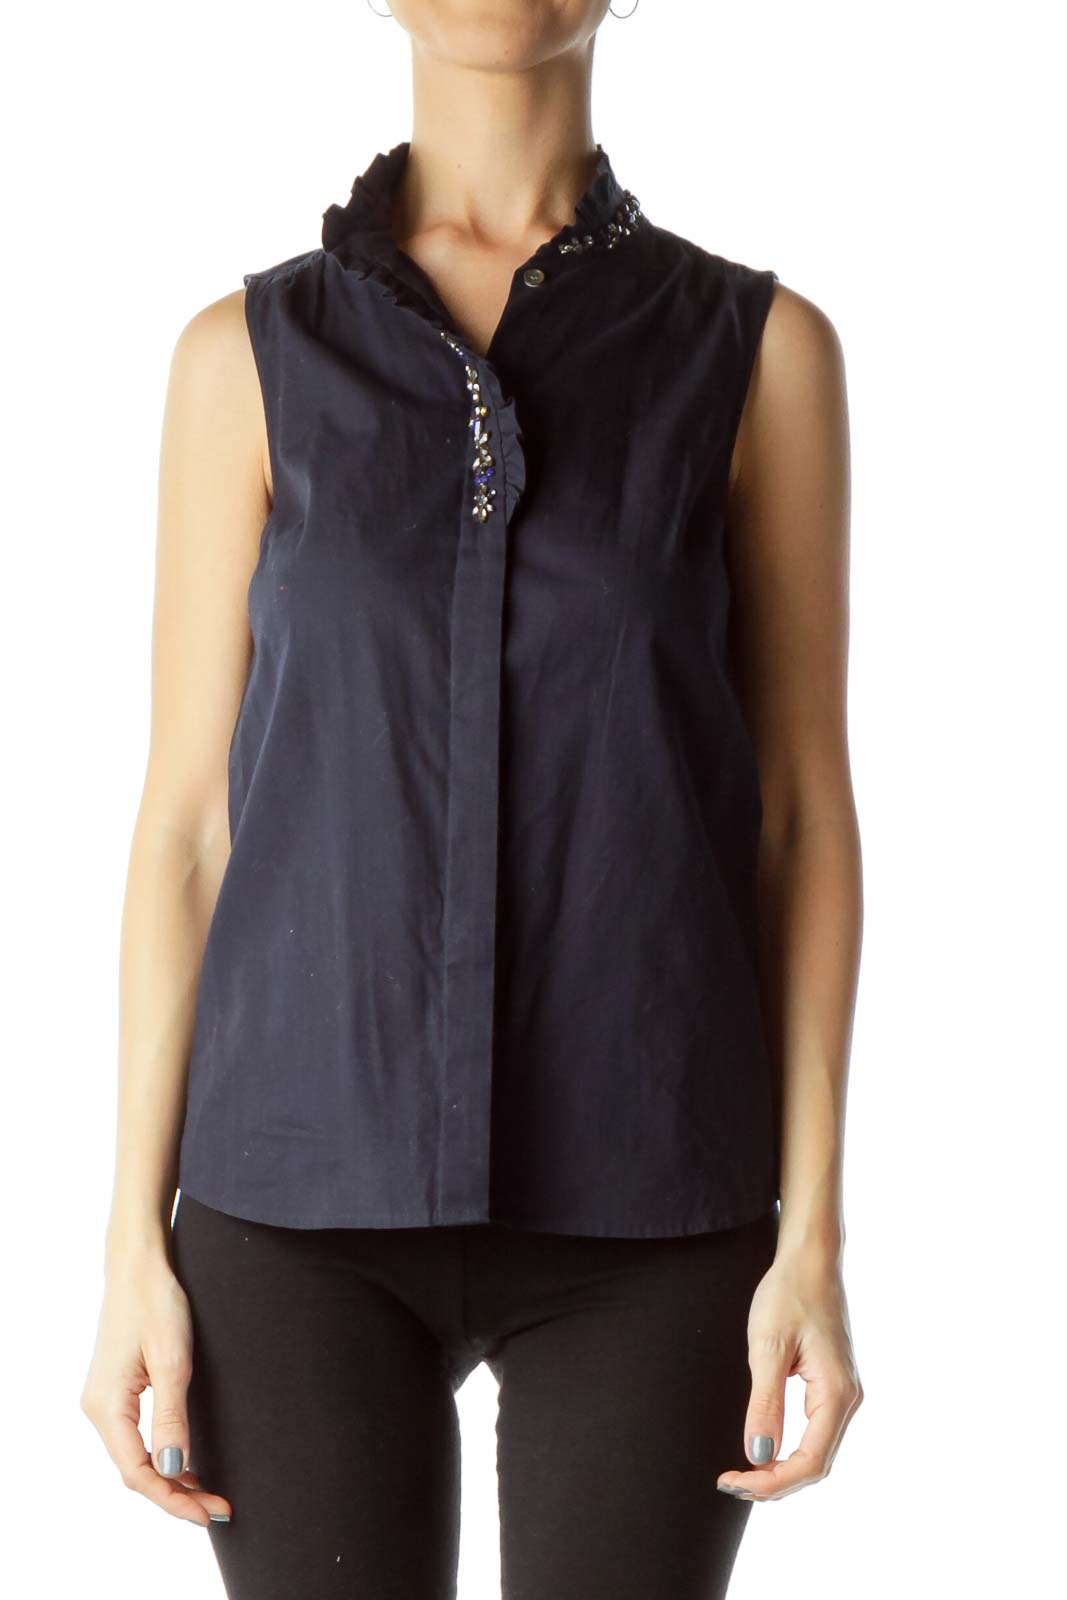 Navy Sleeveless Shirt with Jewel Detail